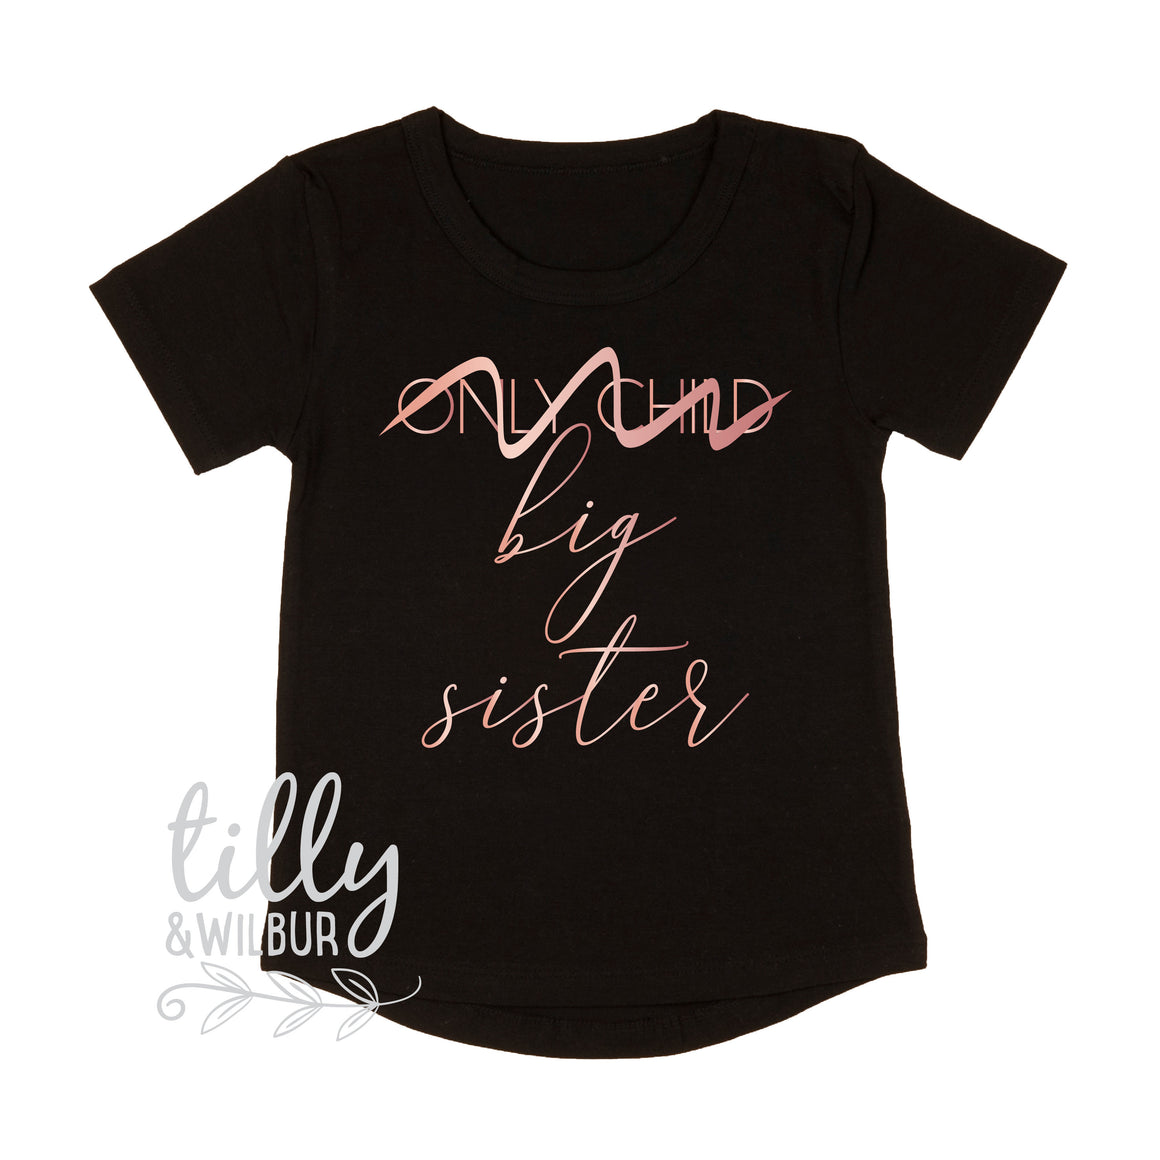 Only Child Big Sister T-Shirt, I'm Going To Be A Big Sister Shirt, Only Child No Longer, Big Sister Shirt, Sister Shirt, Sibling Shirt